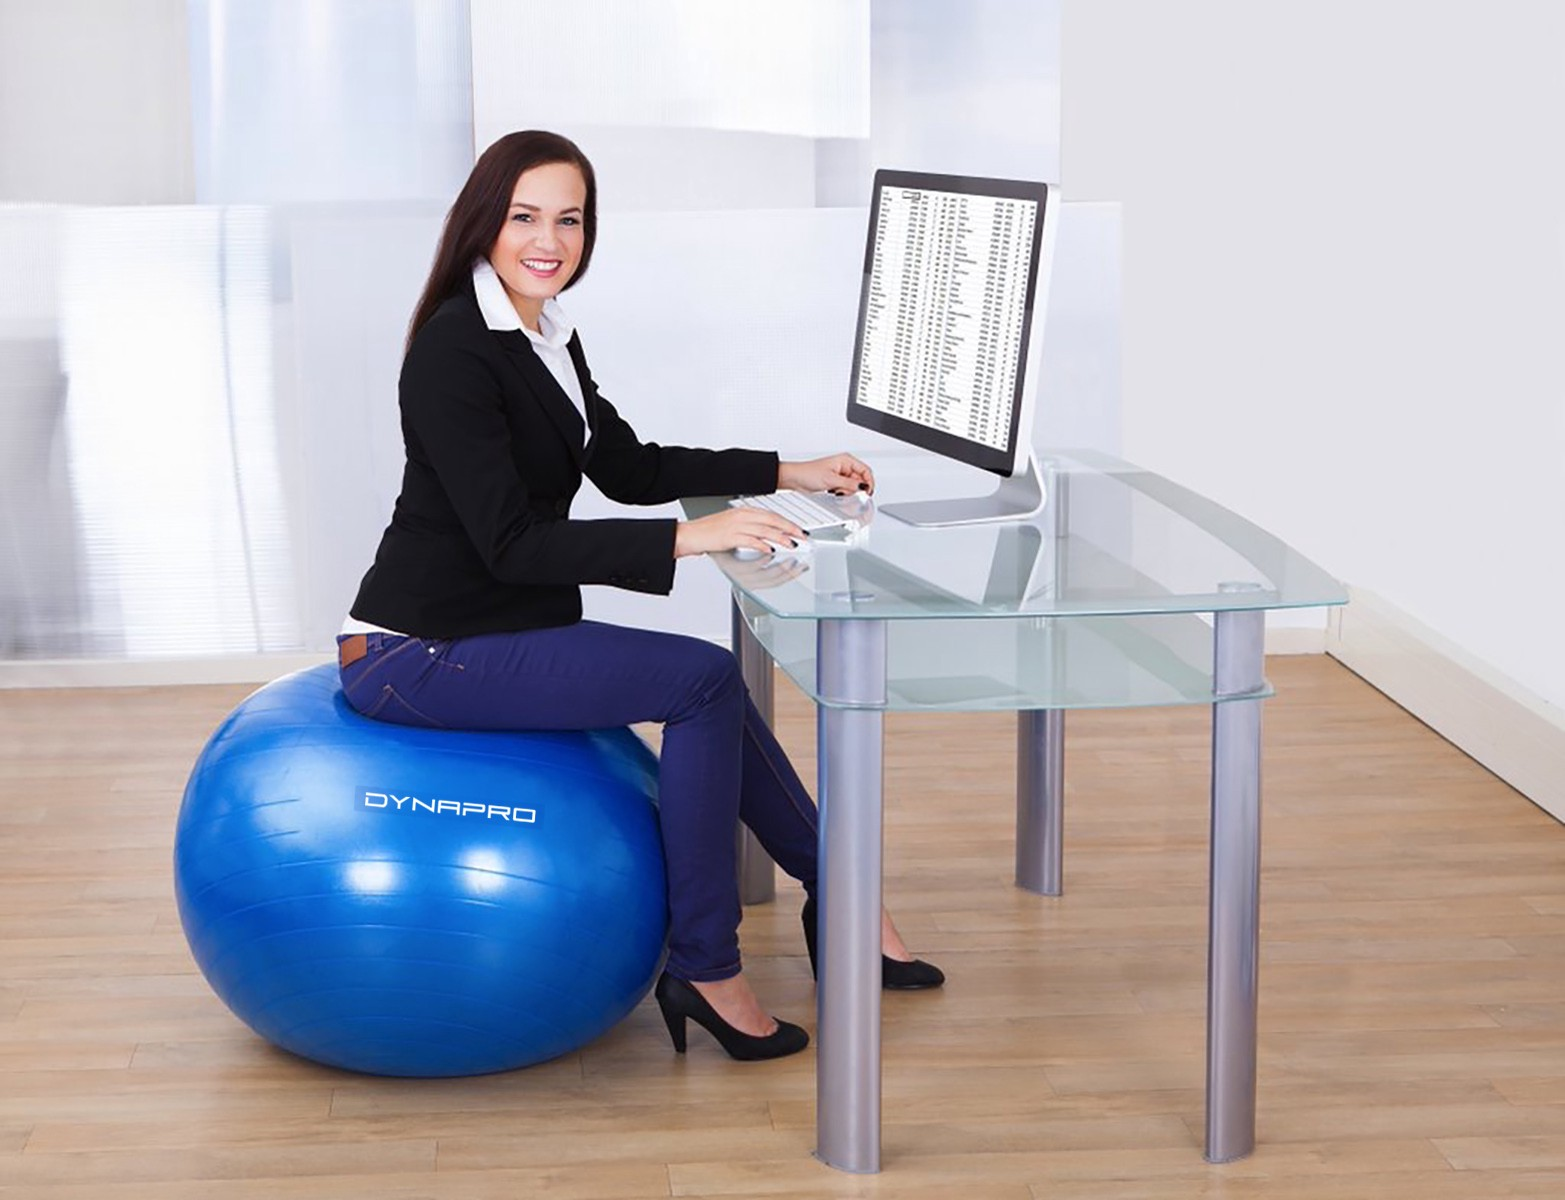 Exercise Ball Desk Chair Exercise Ball Make The Smart Choice To Stay Fit At Work